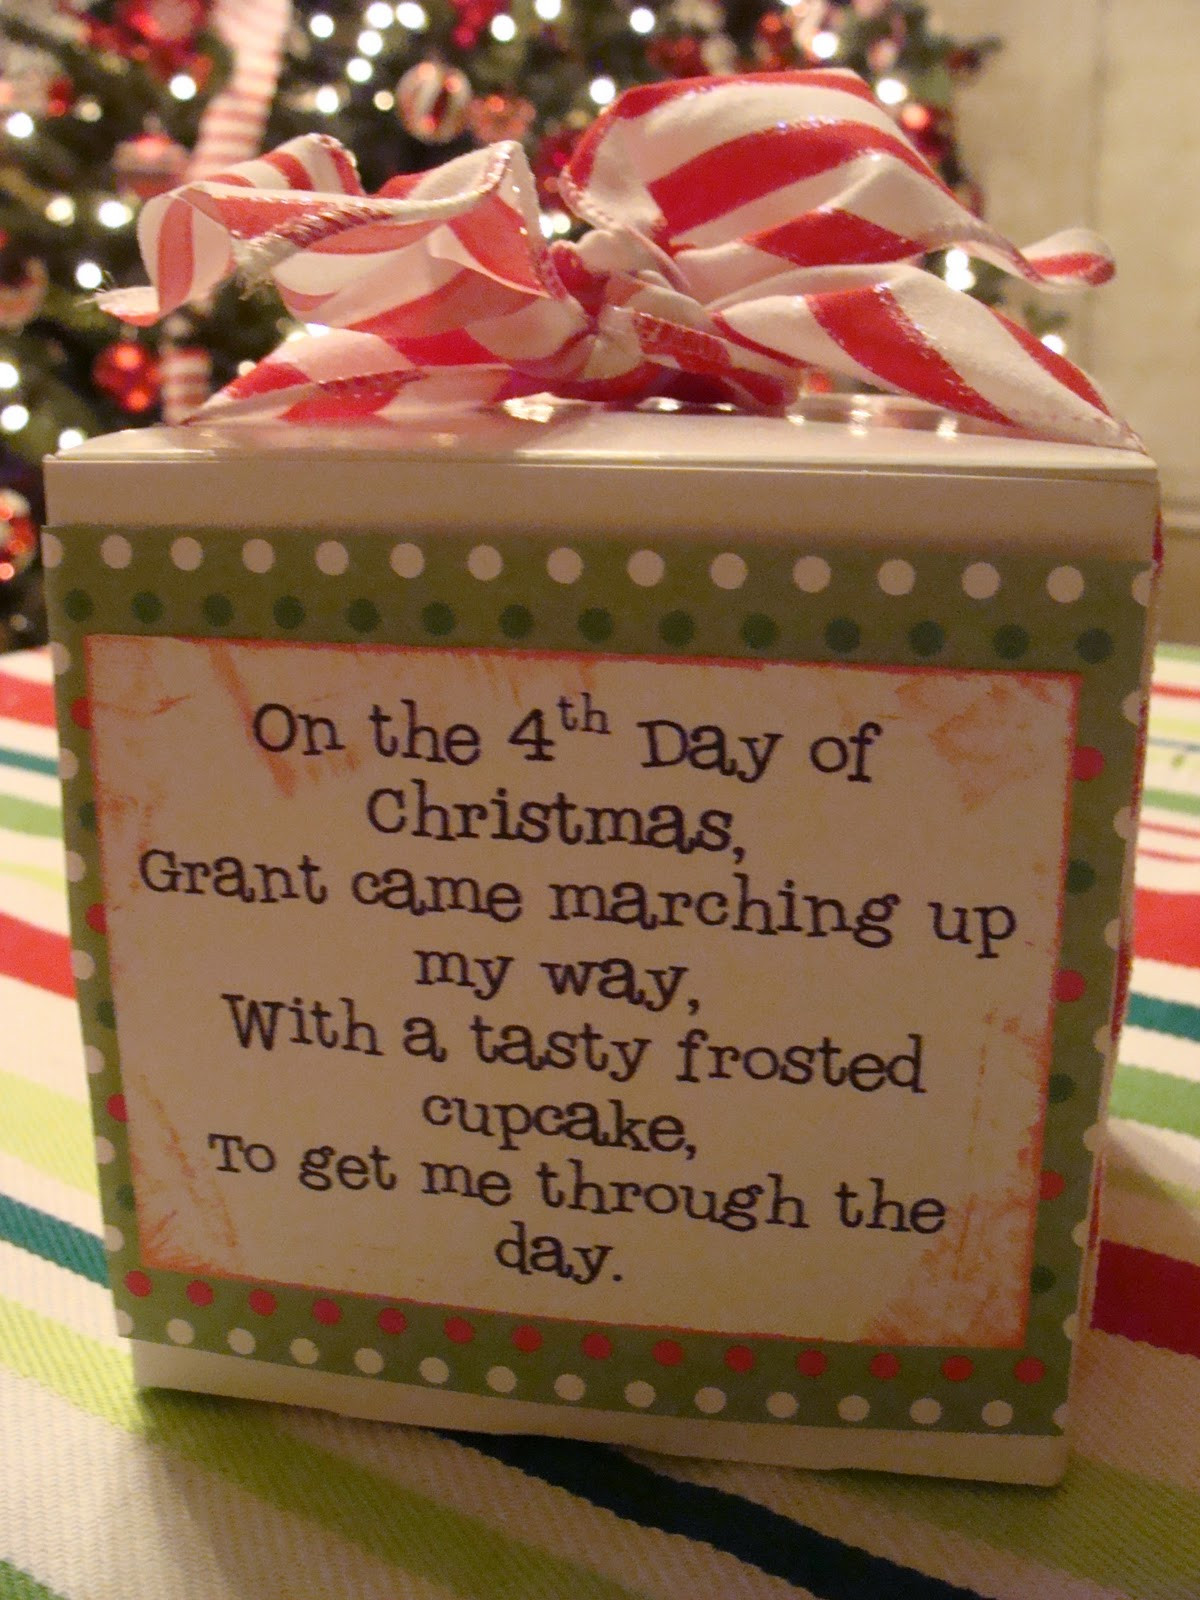 12 Days Of Christmas Gift Ideas For Friends  Marci Coombs 12 Days of Christmas